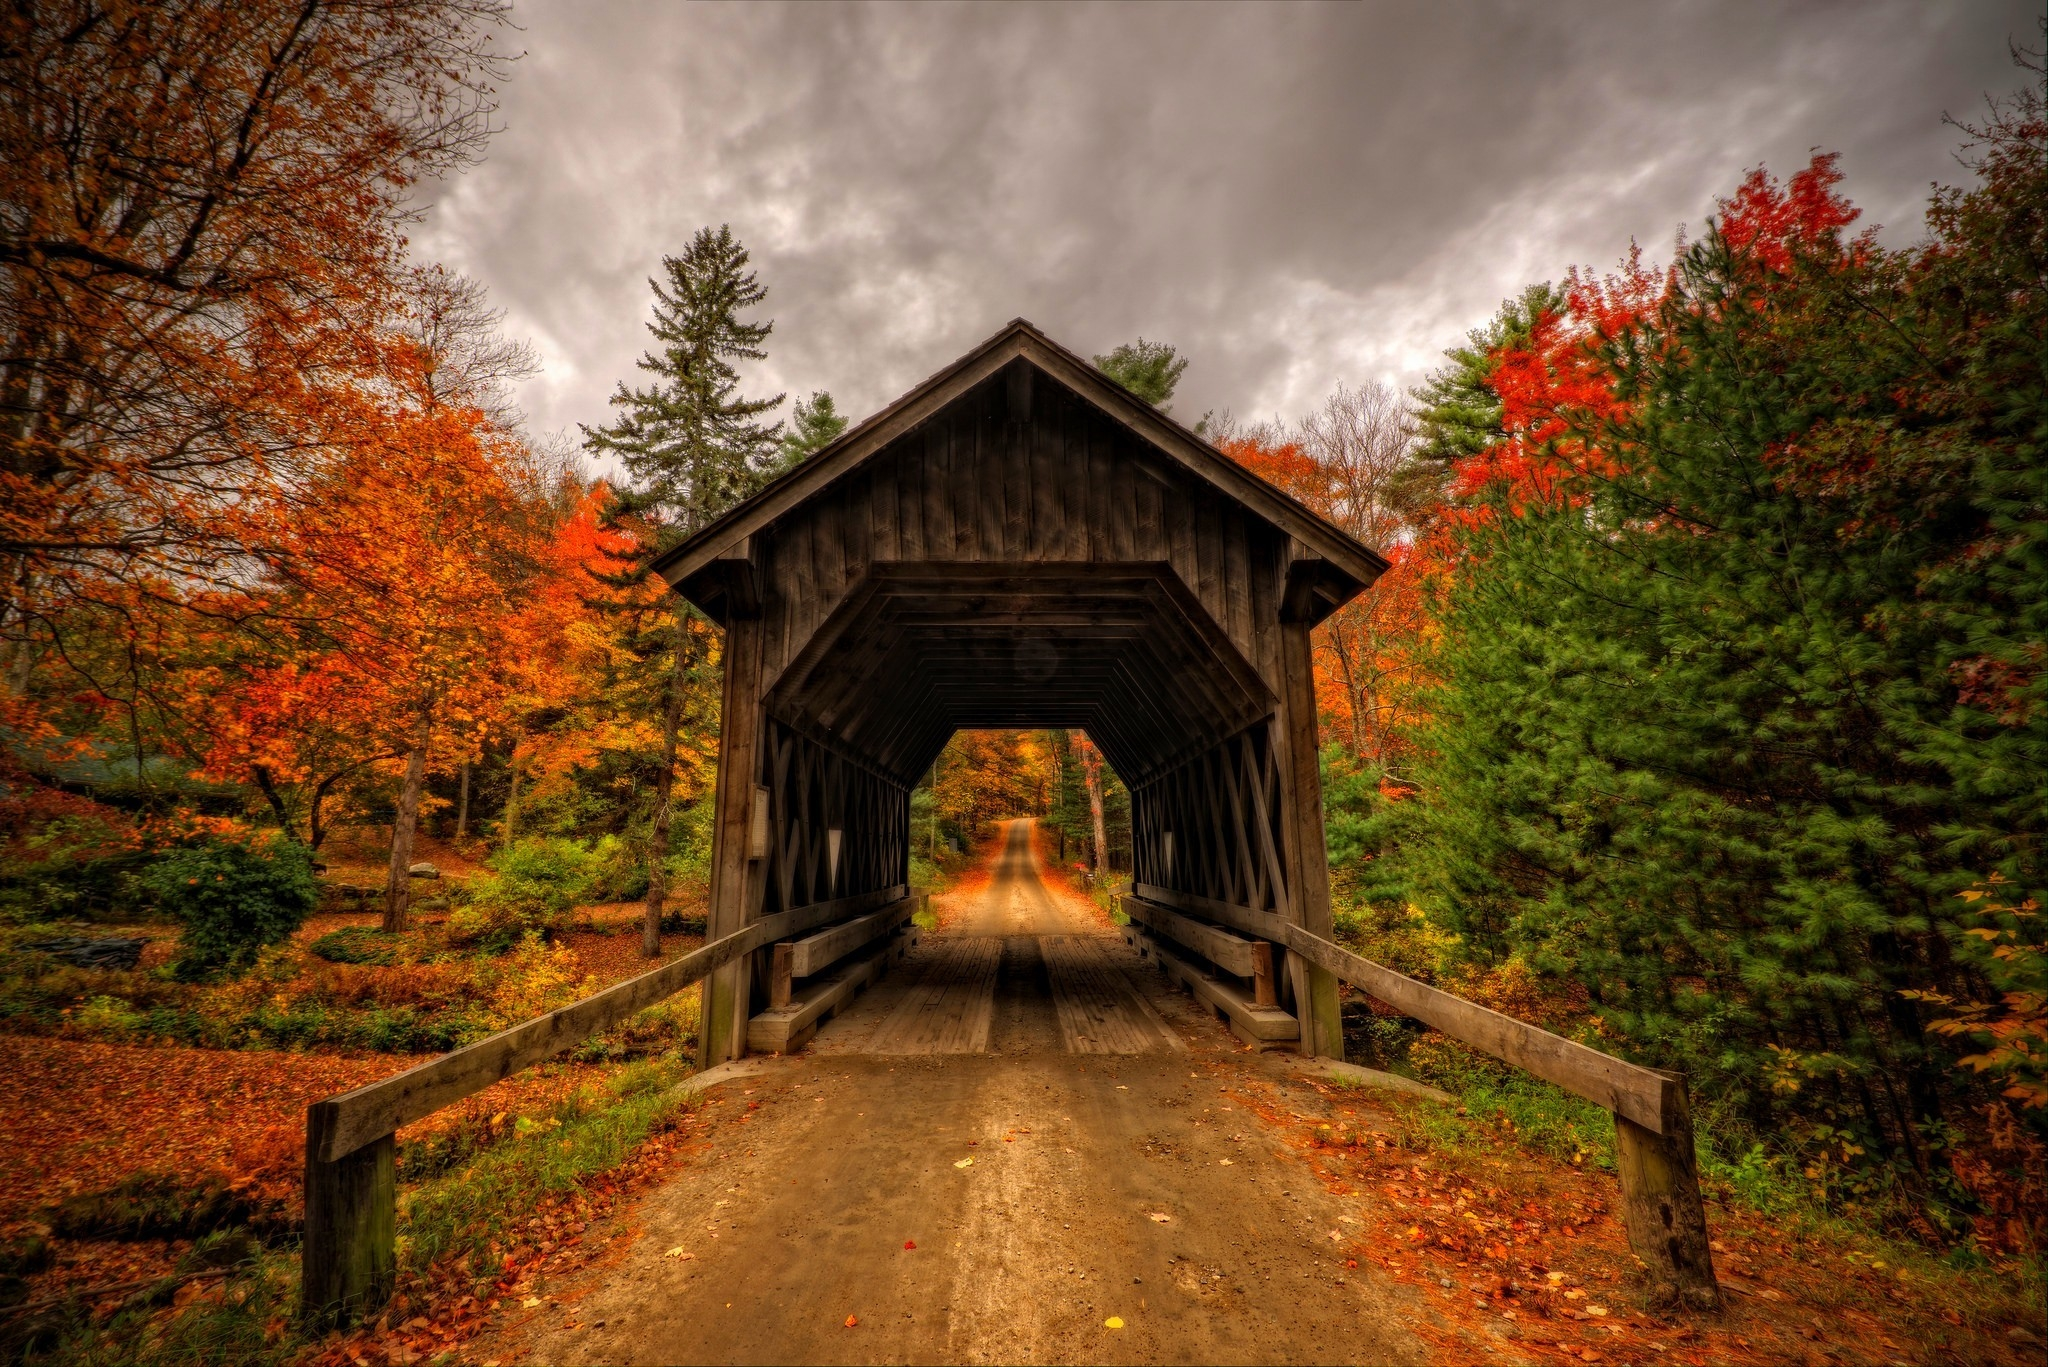 New England Fall Desktop Wallpaper Covered Bridge In Autumn Full Hd Wallpaper And Background